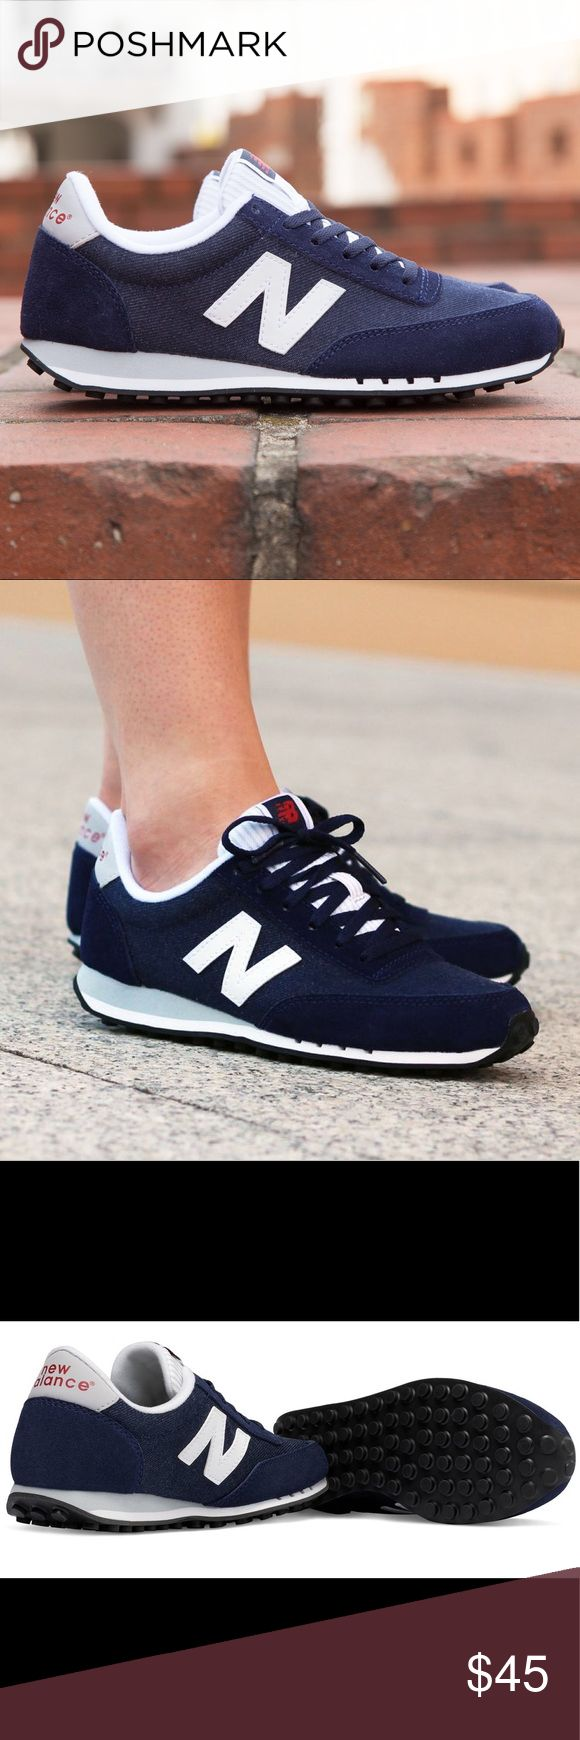 NEW BALANCE 410 New Balance Sneakers 410 Classics - Women's suede and fabric denim. Navy blue and white --- Lightweight. New Balance Shoes Sneakers